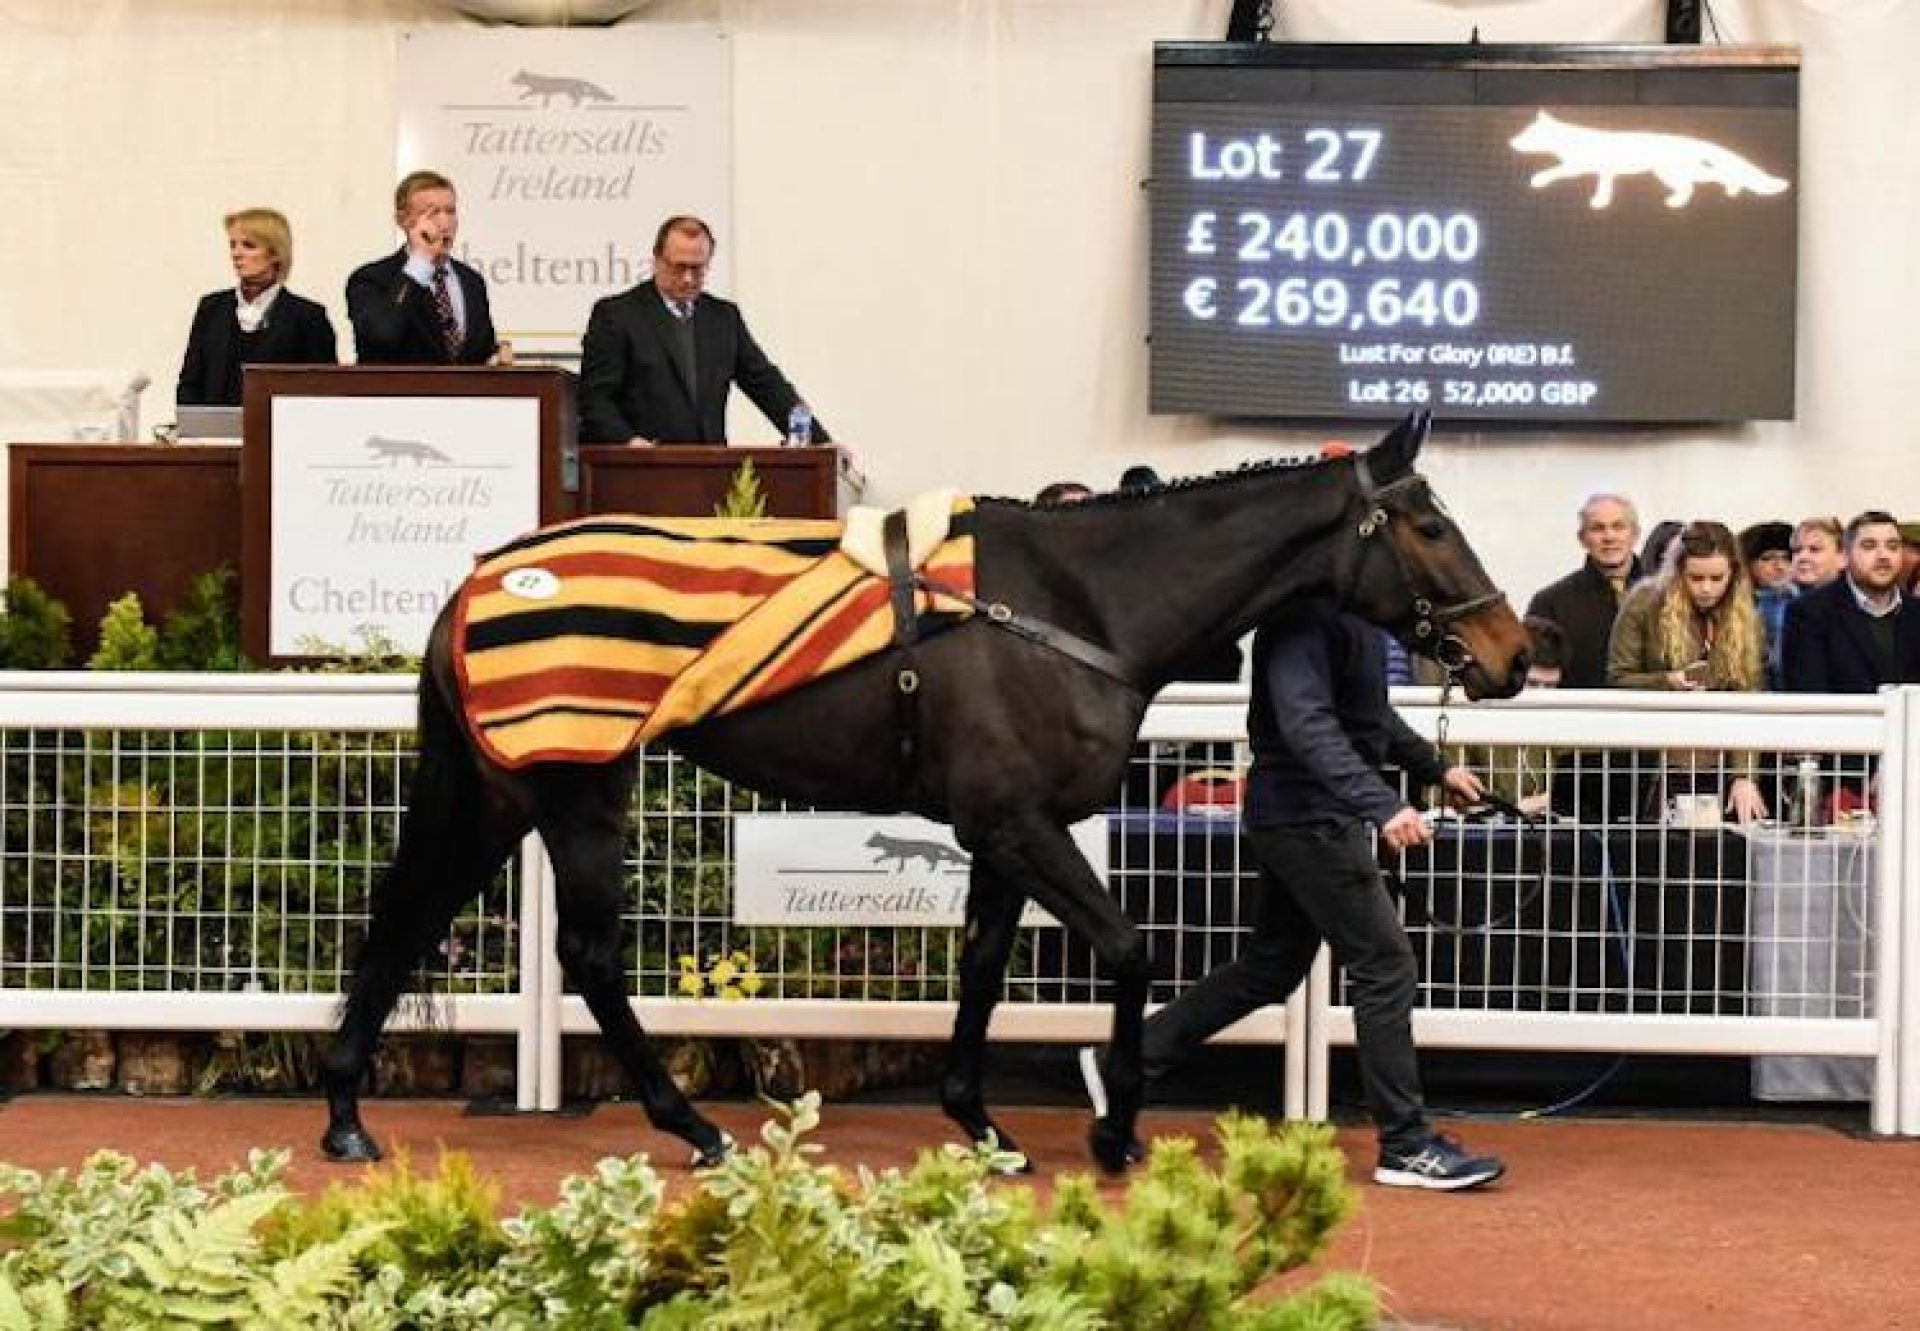 Lust For Glory (Getaway) selling for £240,000 at Cheltenham